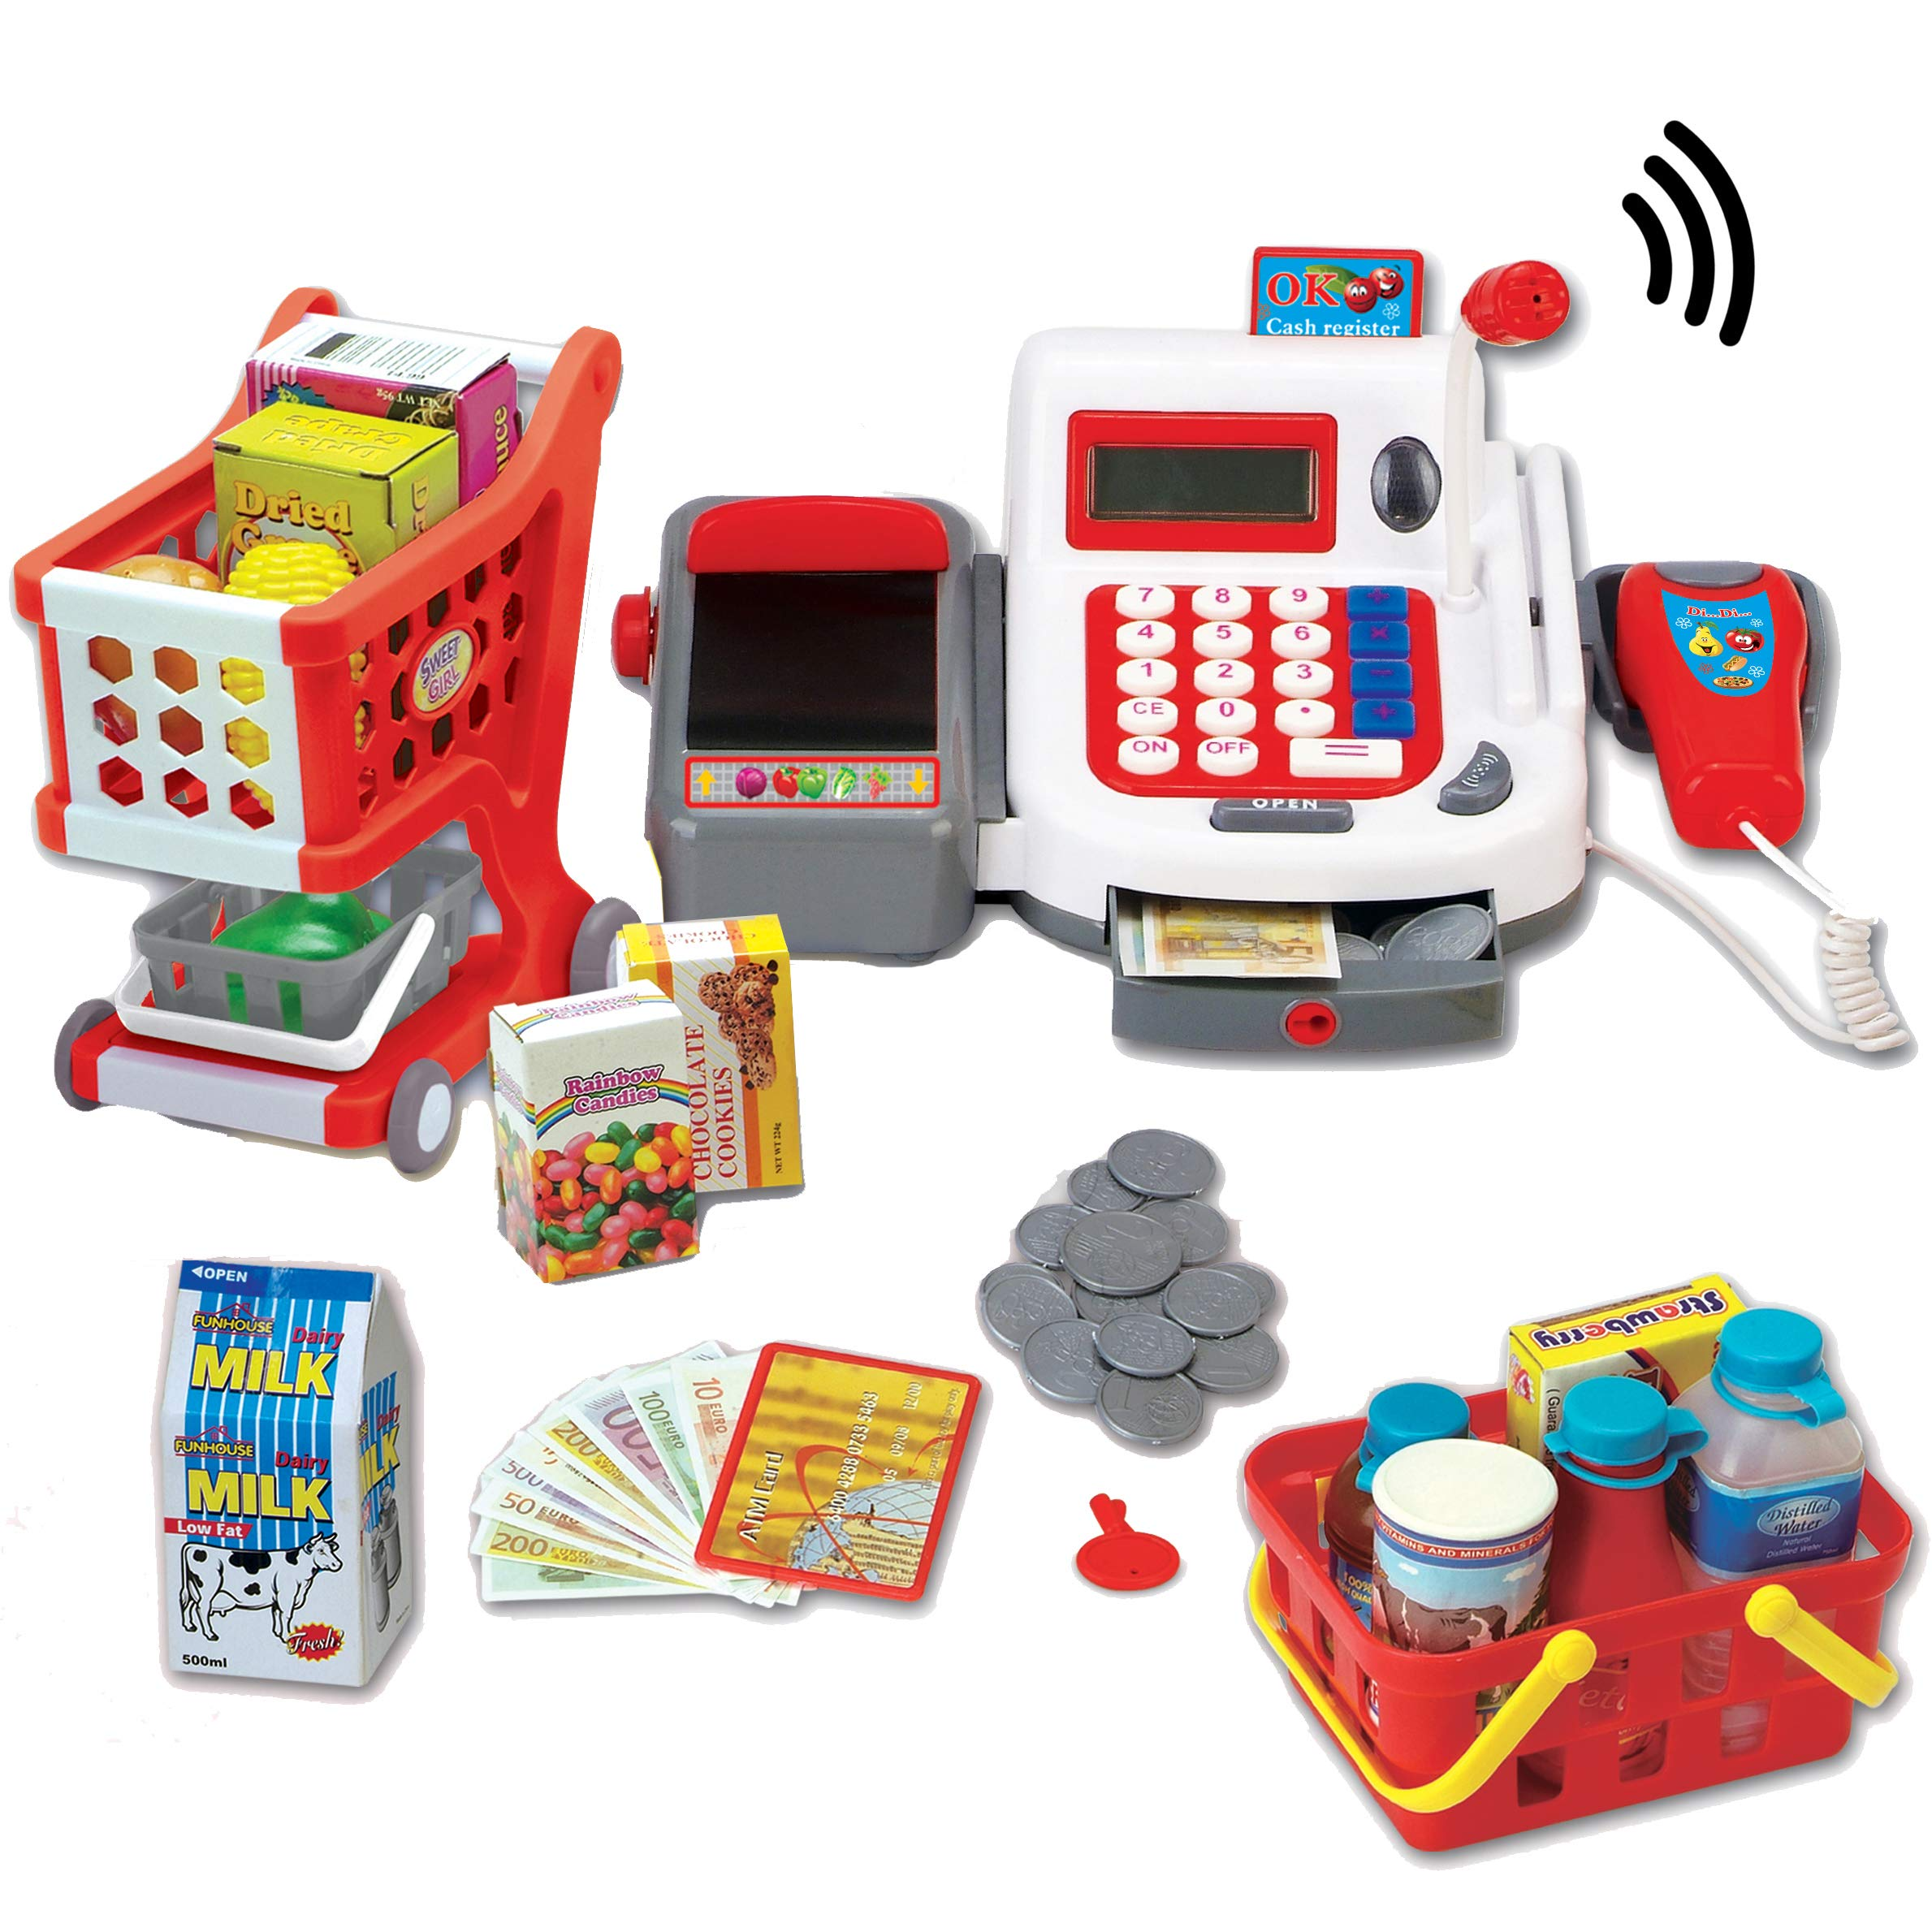 Liberty Imports Multi-Functional Educational Pretend Play Electronic Toy Cash Register with Microphone, Scanner, Scale, Calculator, Credit Card Reader, Shopping Basket and Groceries (Deluxe)